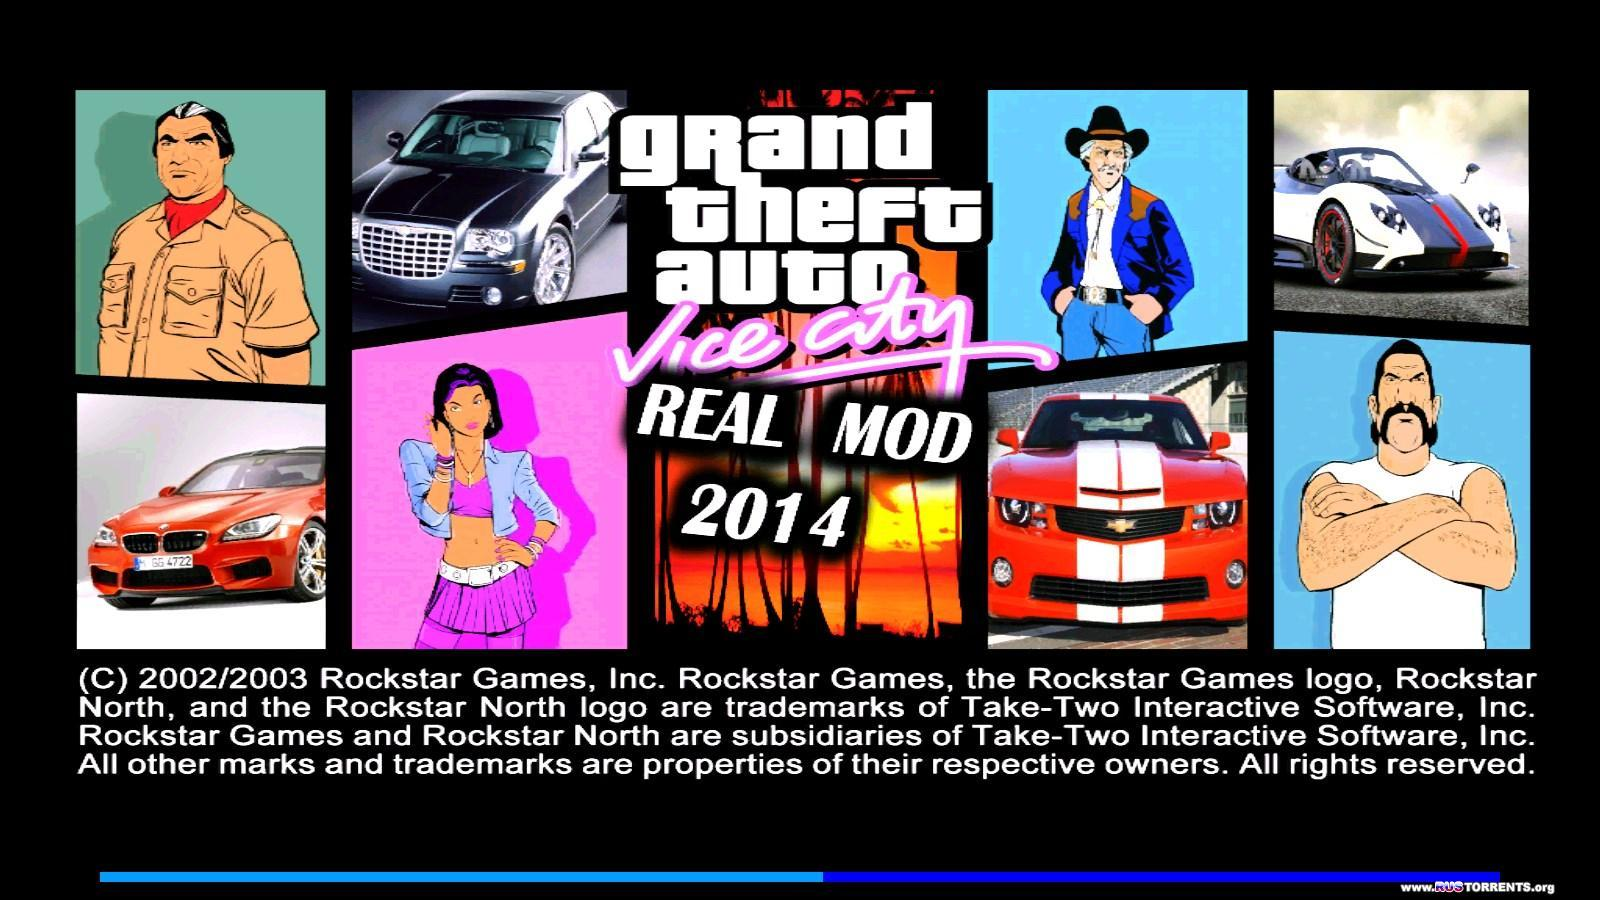 Grand Theft Auto: Vice City - Real Mod 2014